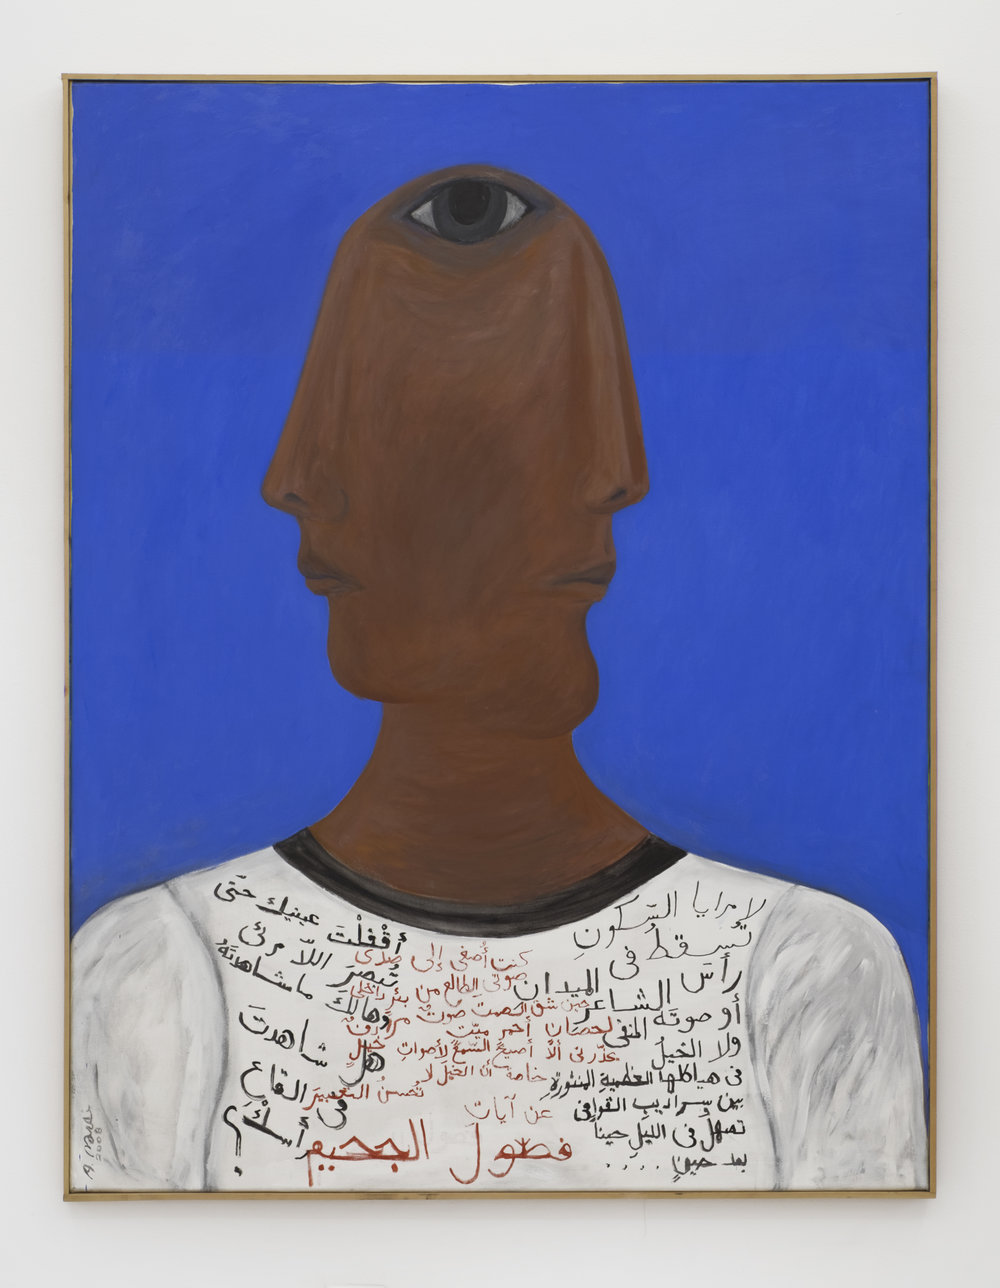 Ahmed Morsi, Untitled, 2008, Acrylic on canvas, 155 x 200 cm. Image courtesy of the artist and Gypsum Gallery